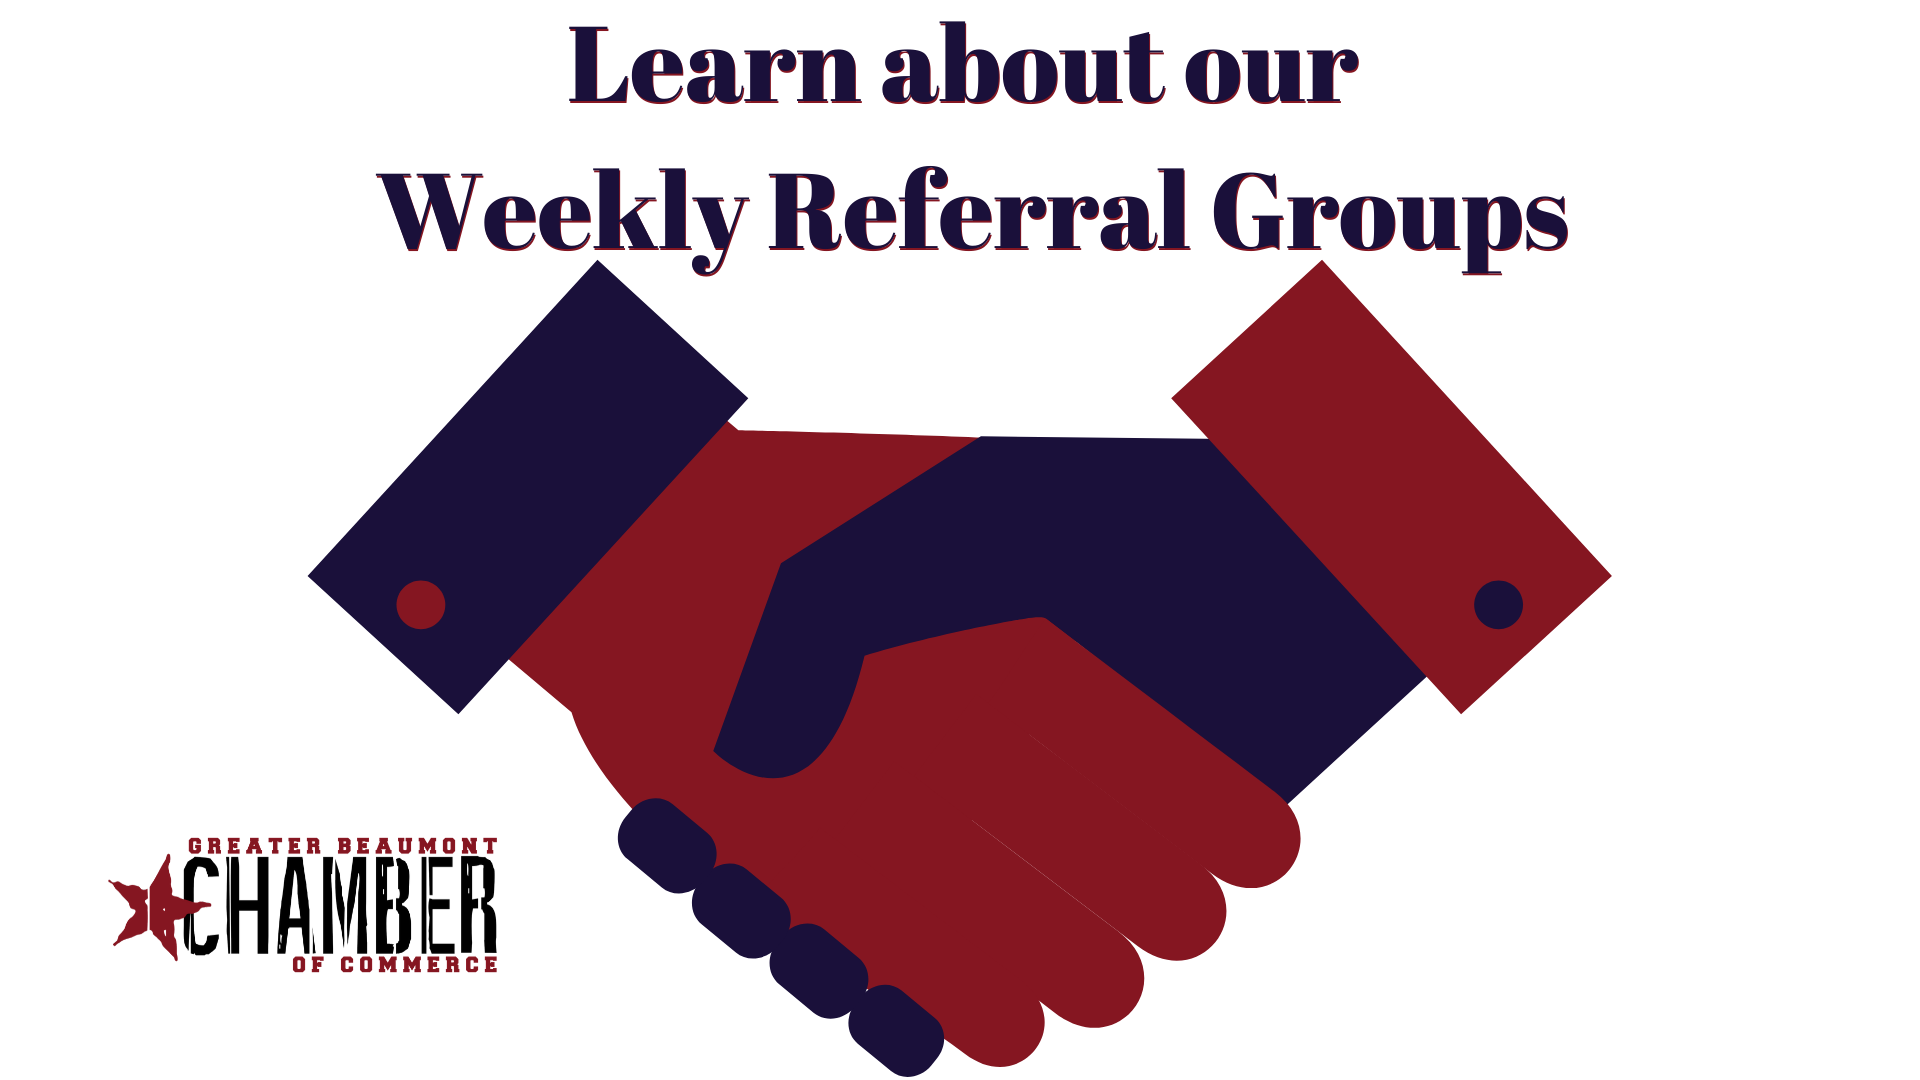 Weekly Referral Groups